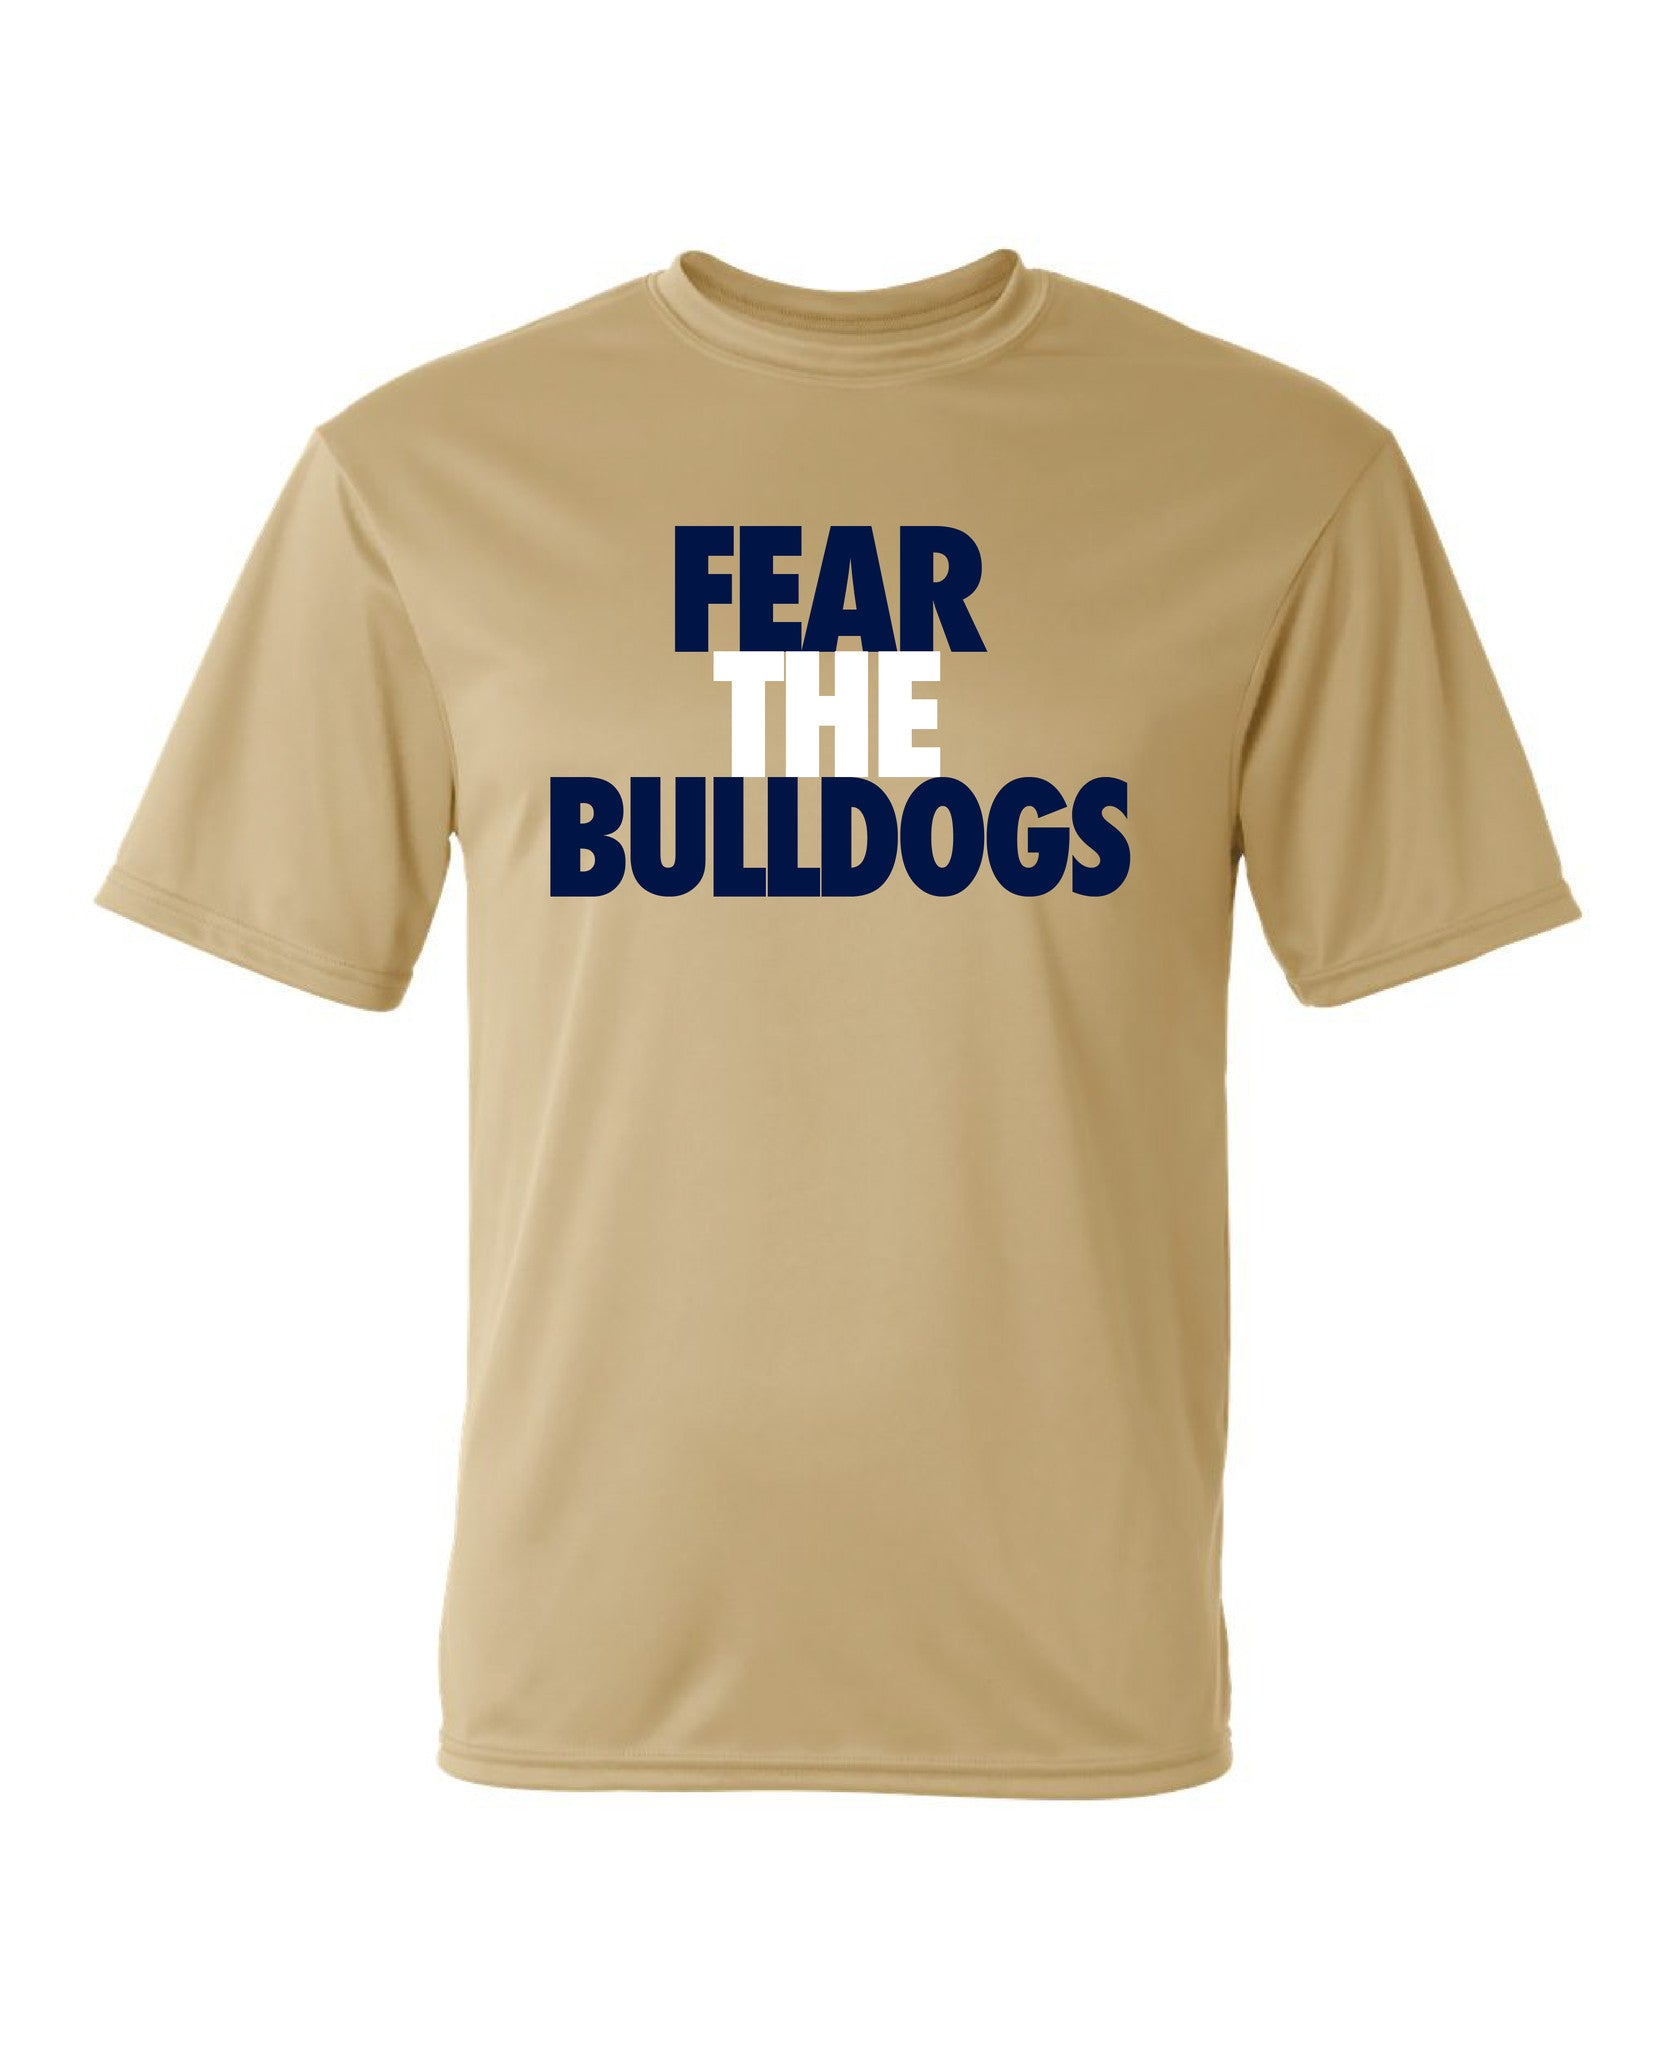 Youth Bulldogs Performance Shirt - CB017